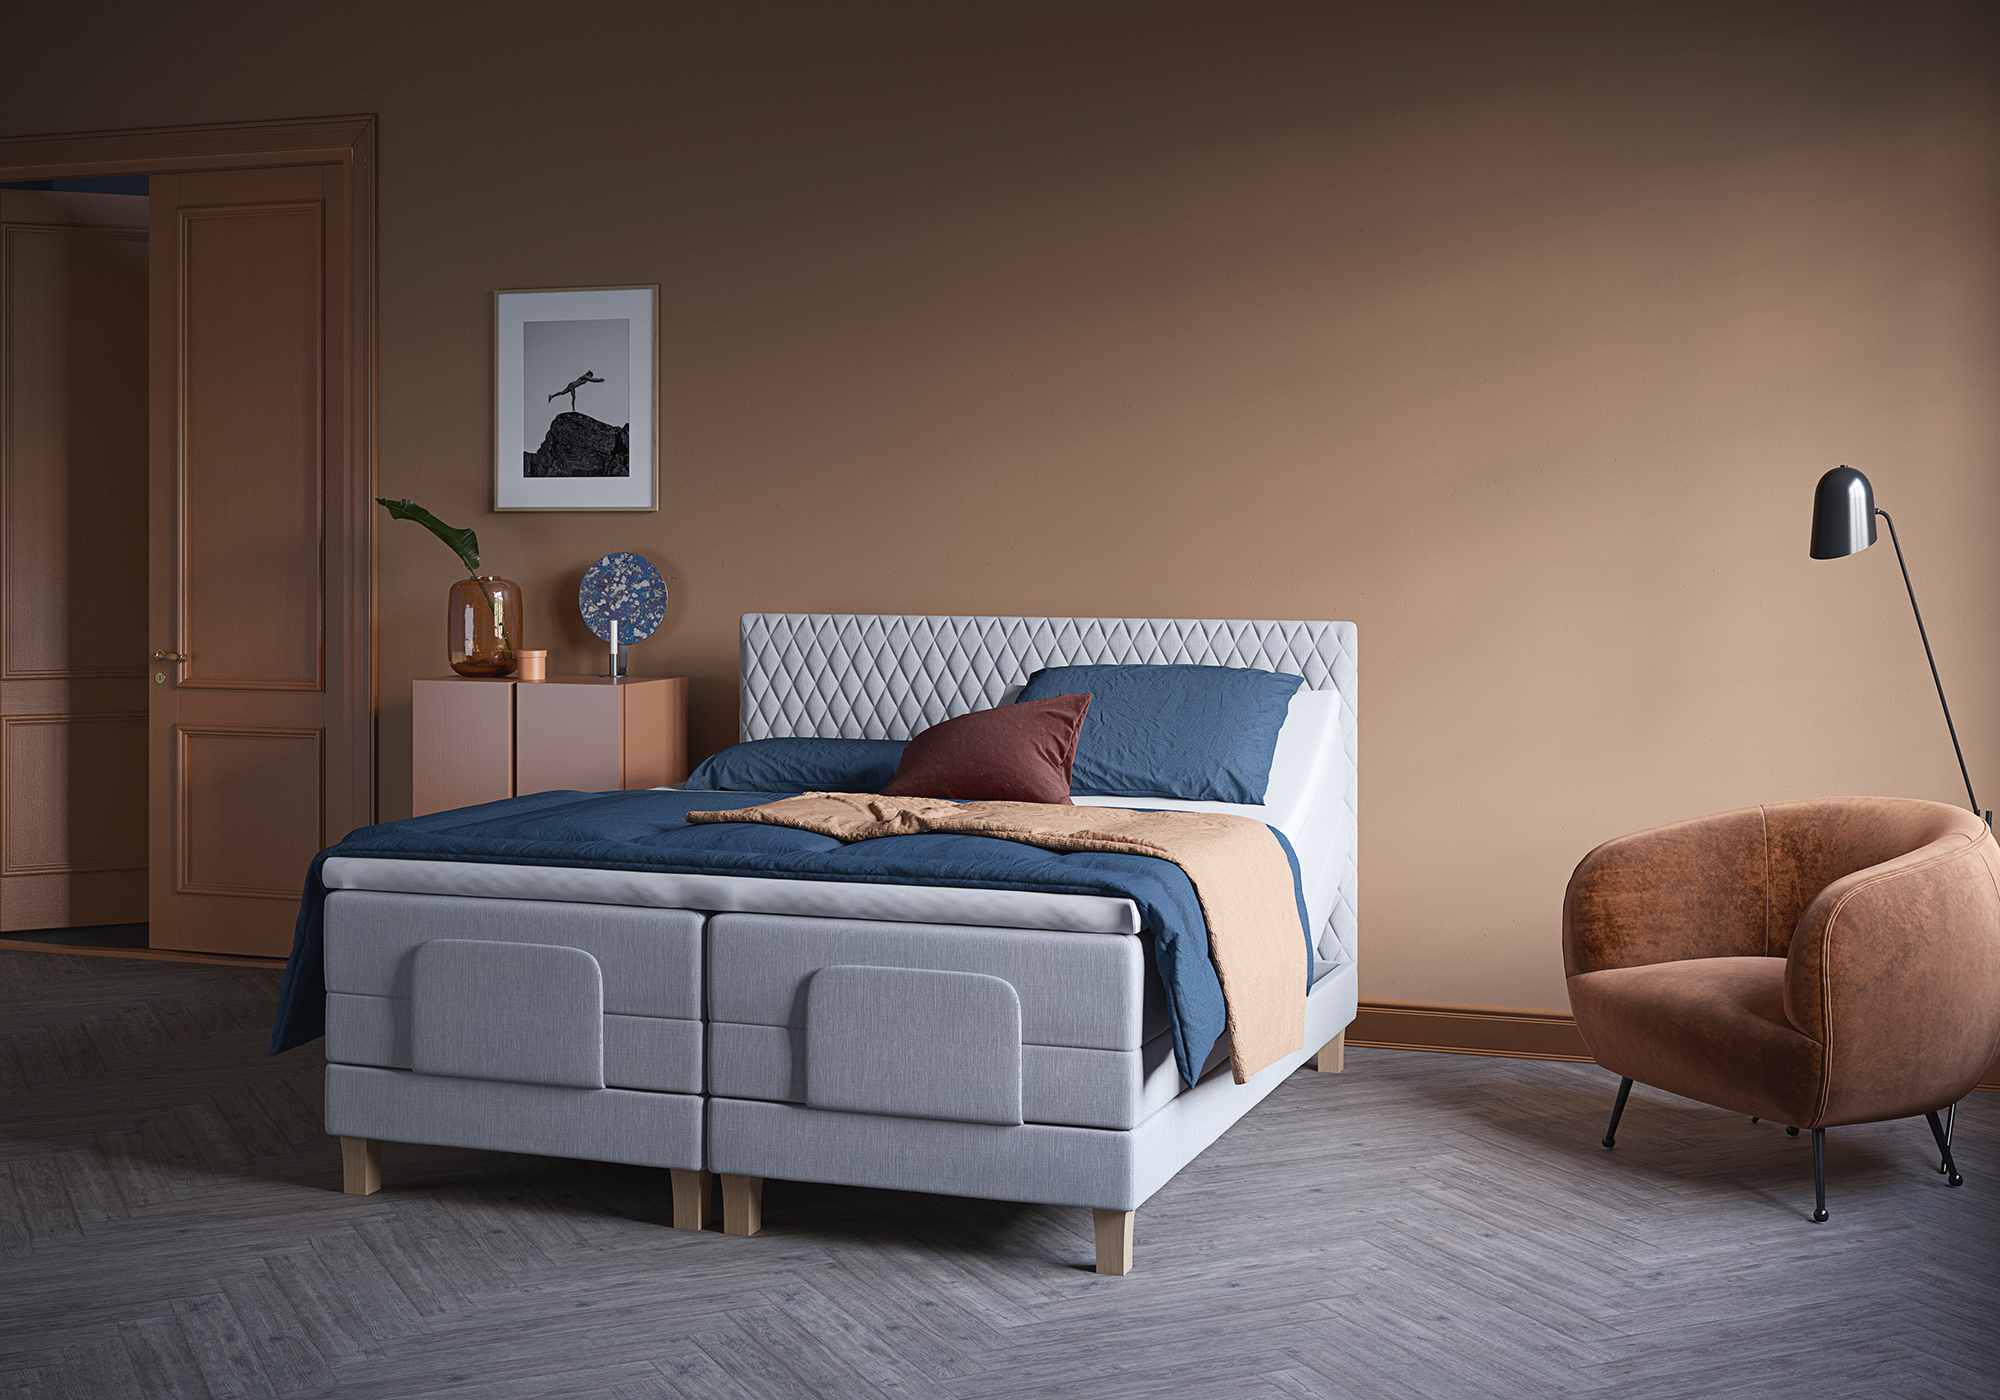 Wonderland W5 532 Adjustable bed